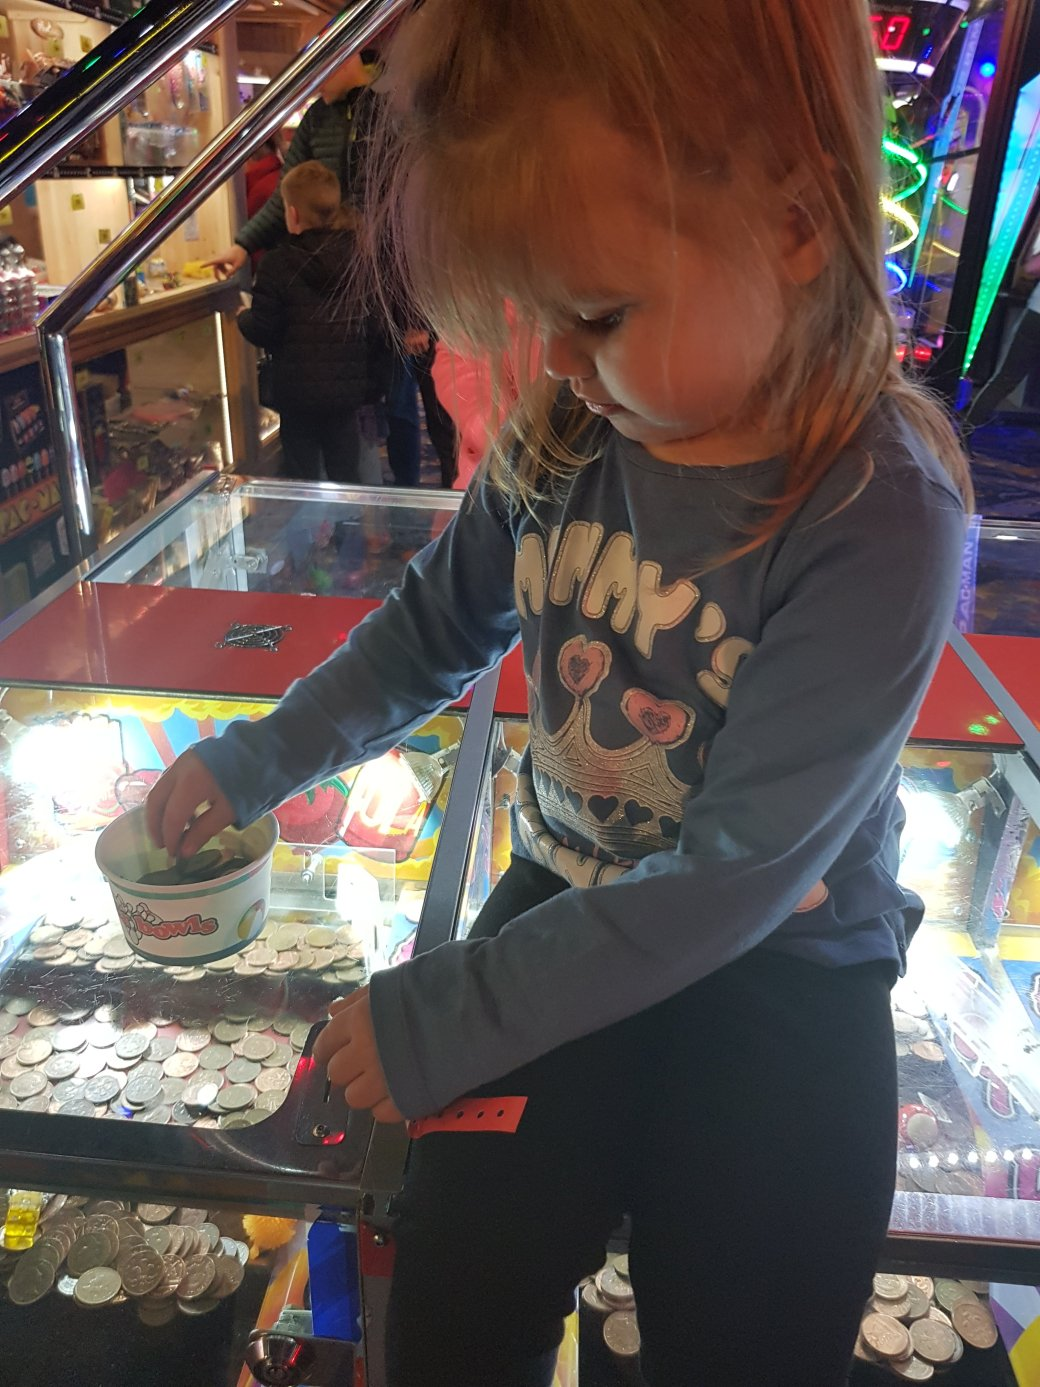 playing with the 2p machine